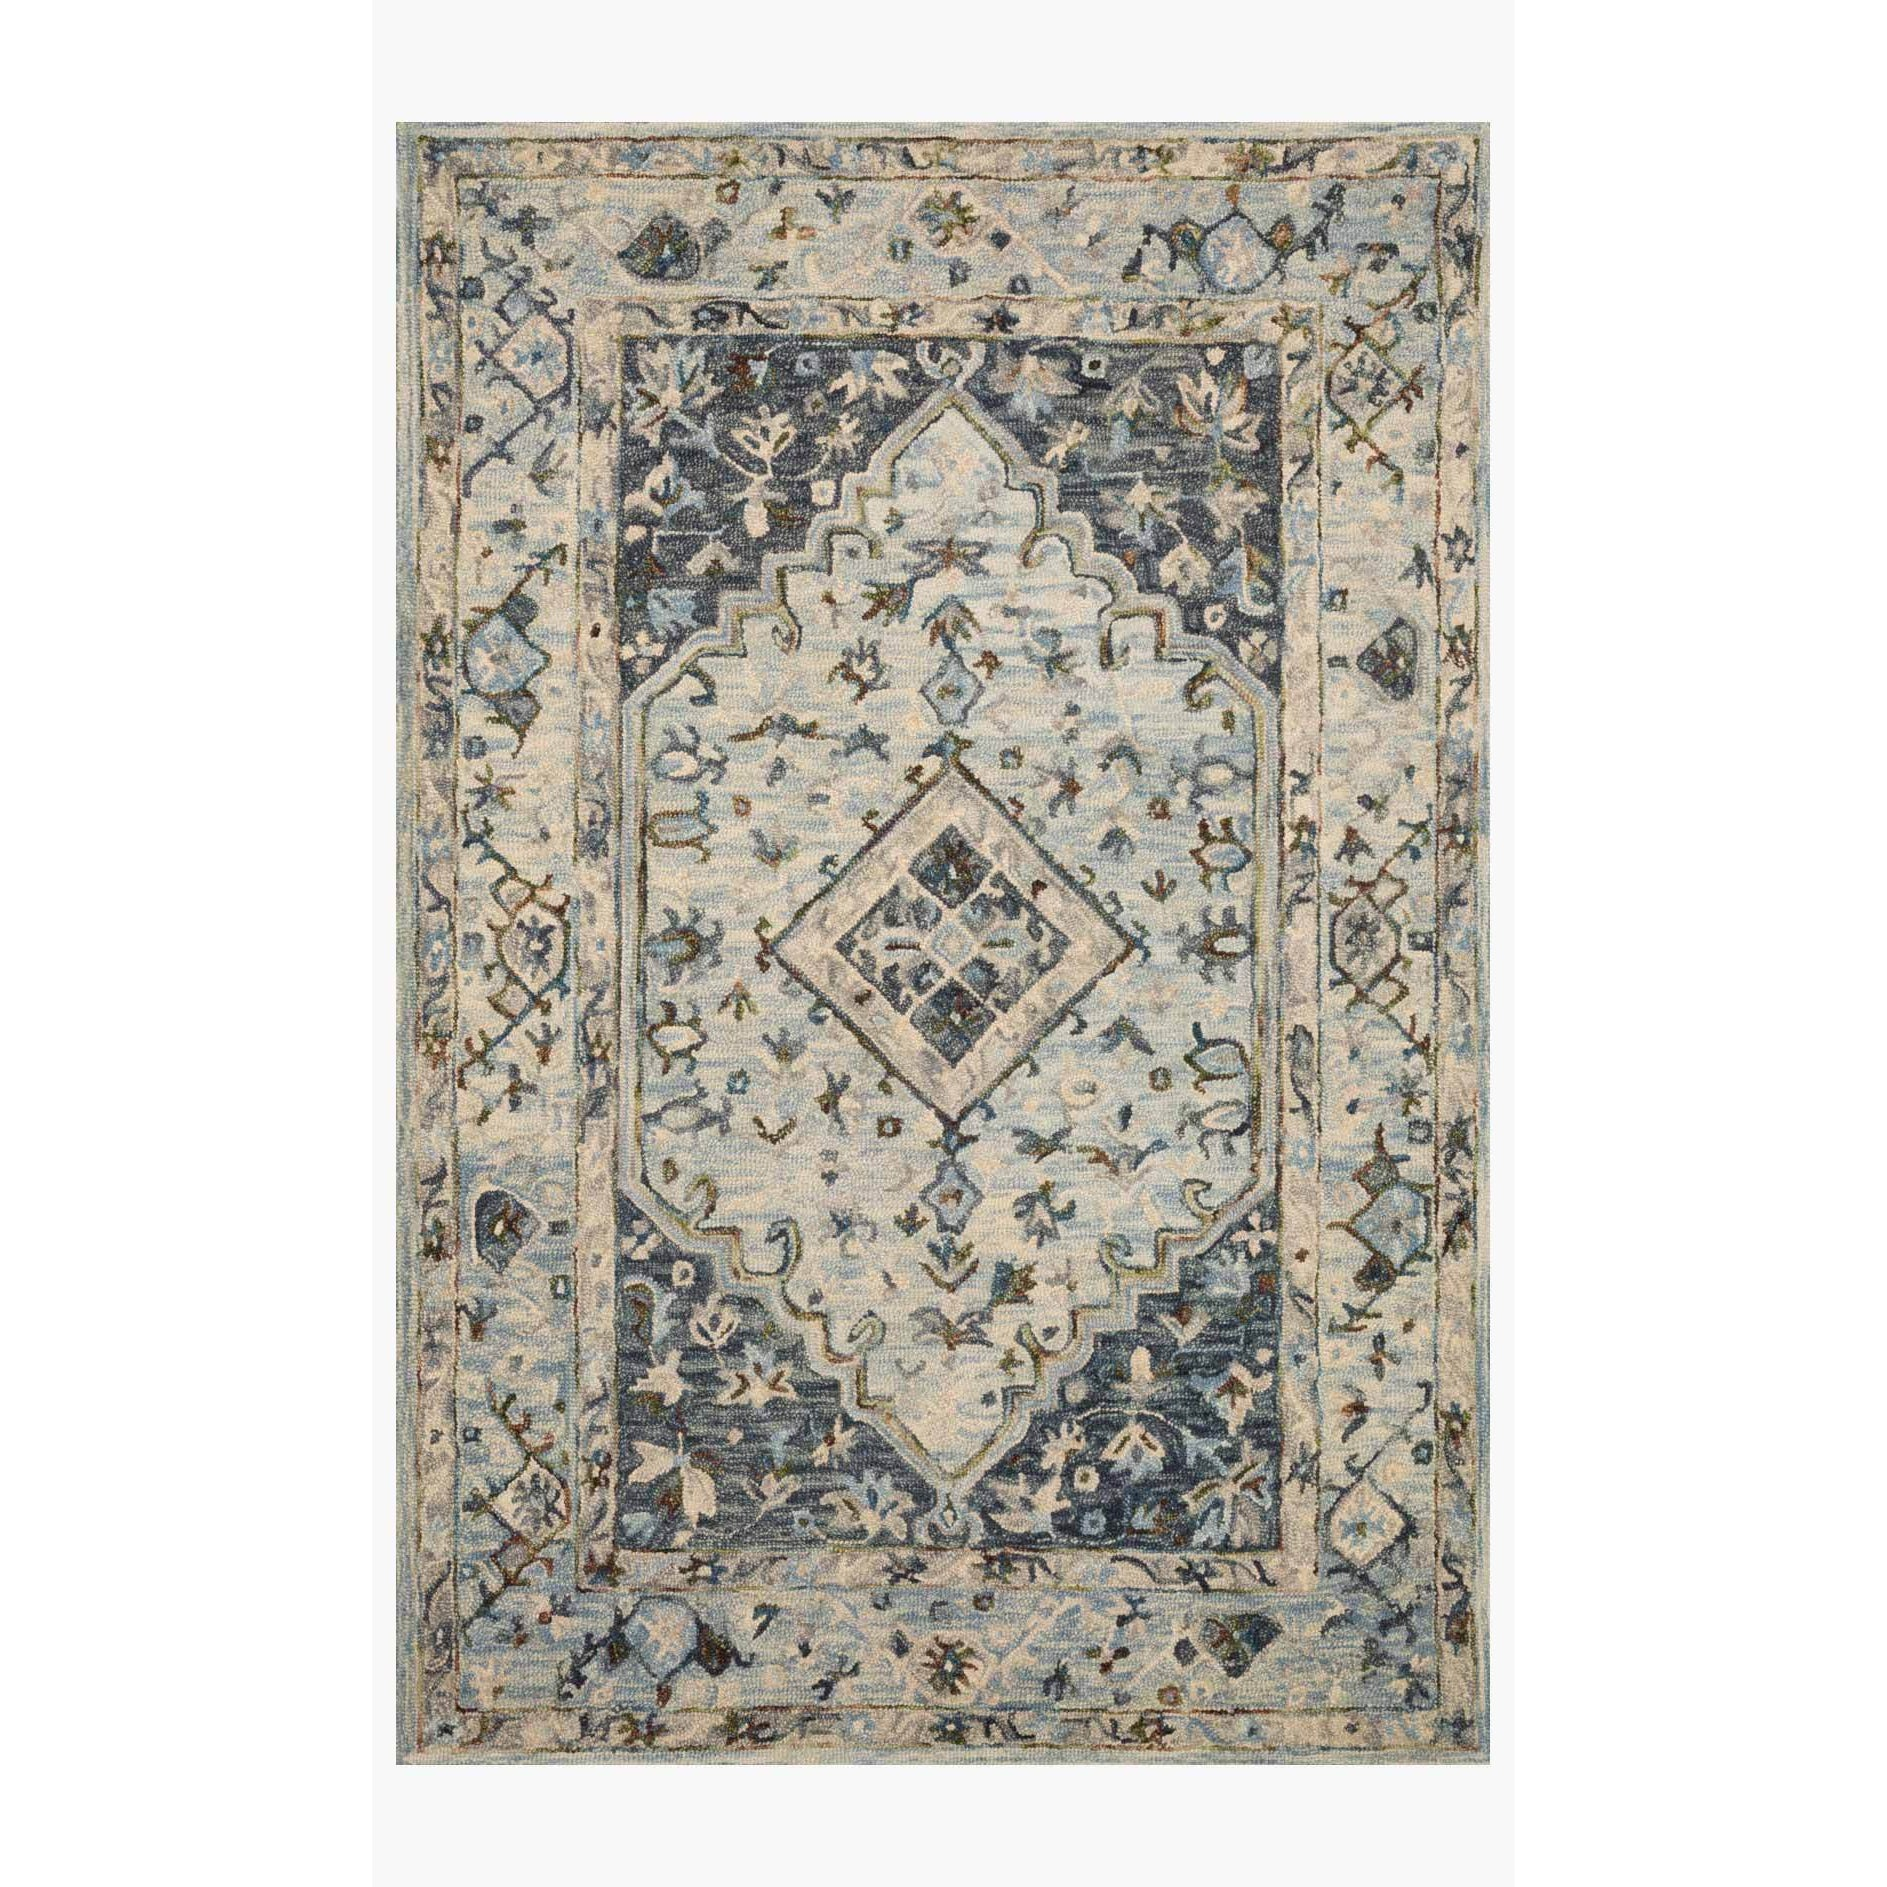 Beatty Rugs by Loloi - BEA-01 - Lt. Blue / Blue-Loloi Rugs-Blue Hand Home